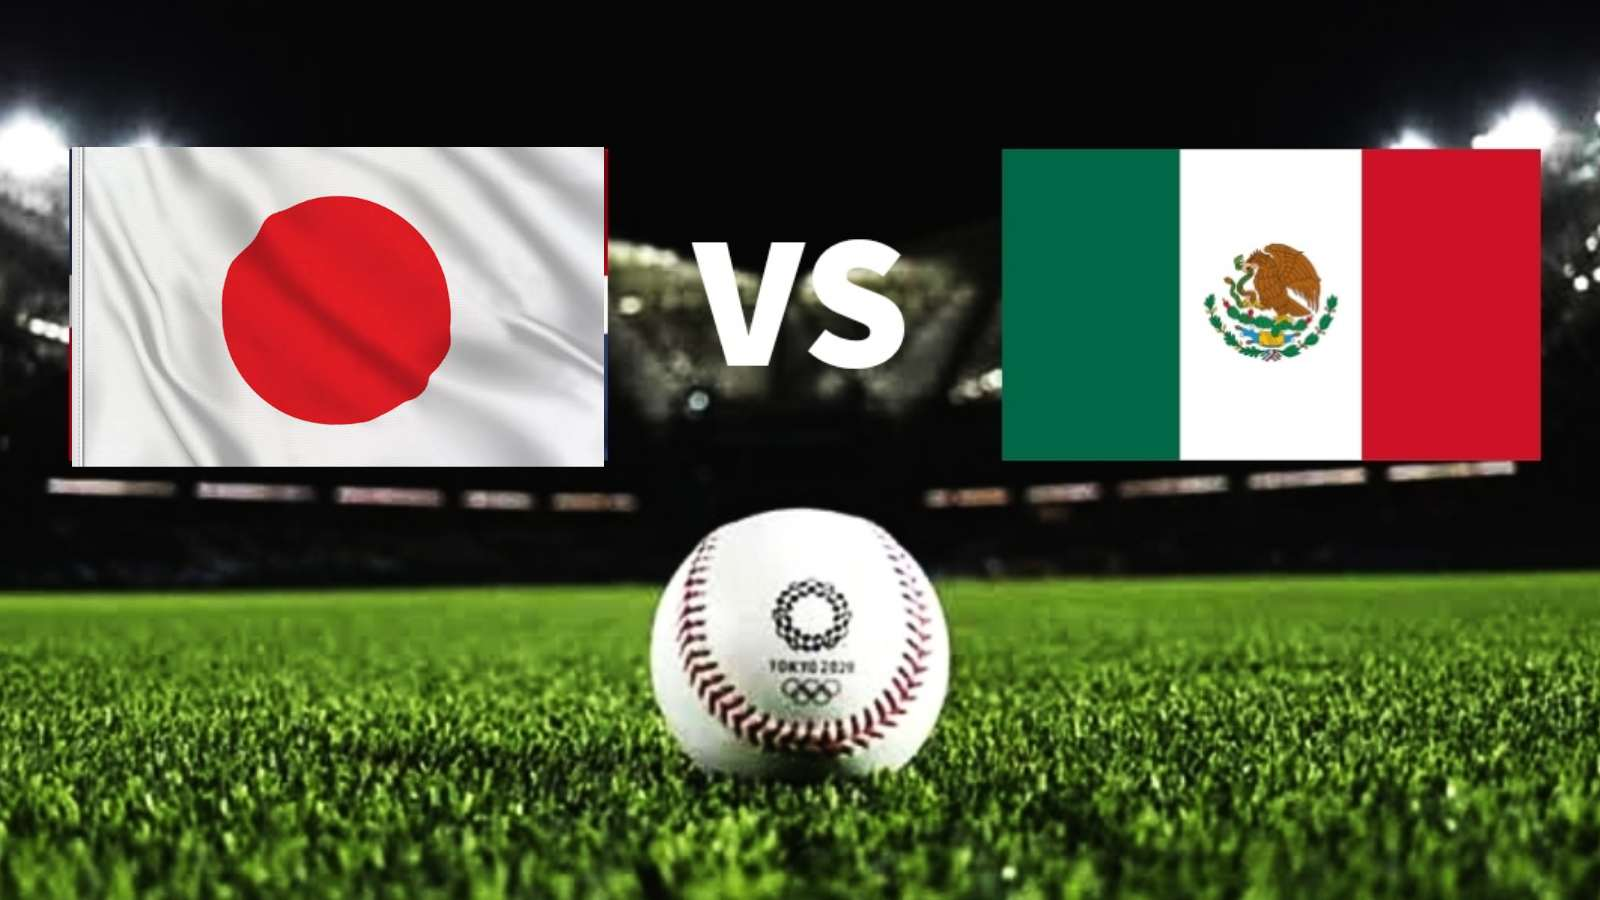 Tokyo Olympics: Japan vs Mexico Baseball live stream – When, where and how to watch » FirstSportz